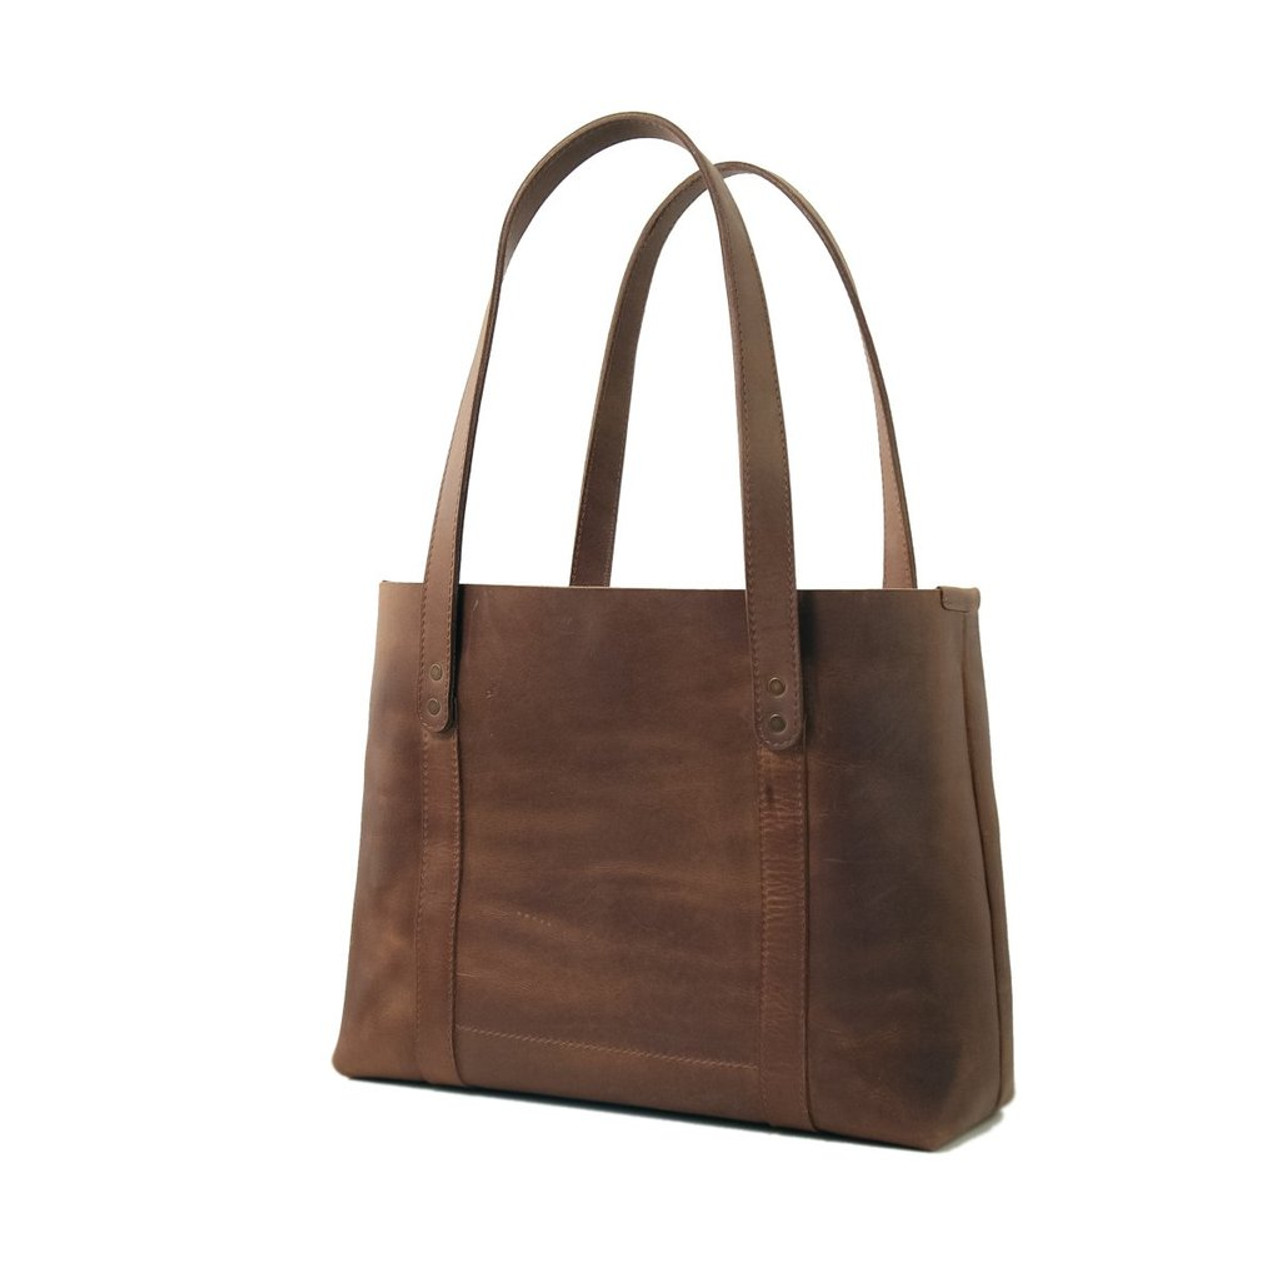 Leather Tote - Hideout by Rustico - Dark Brown